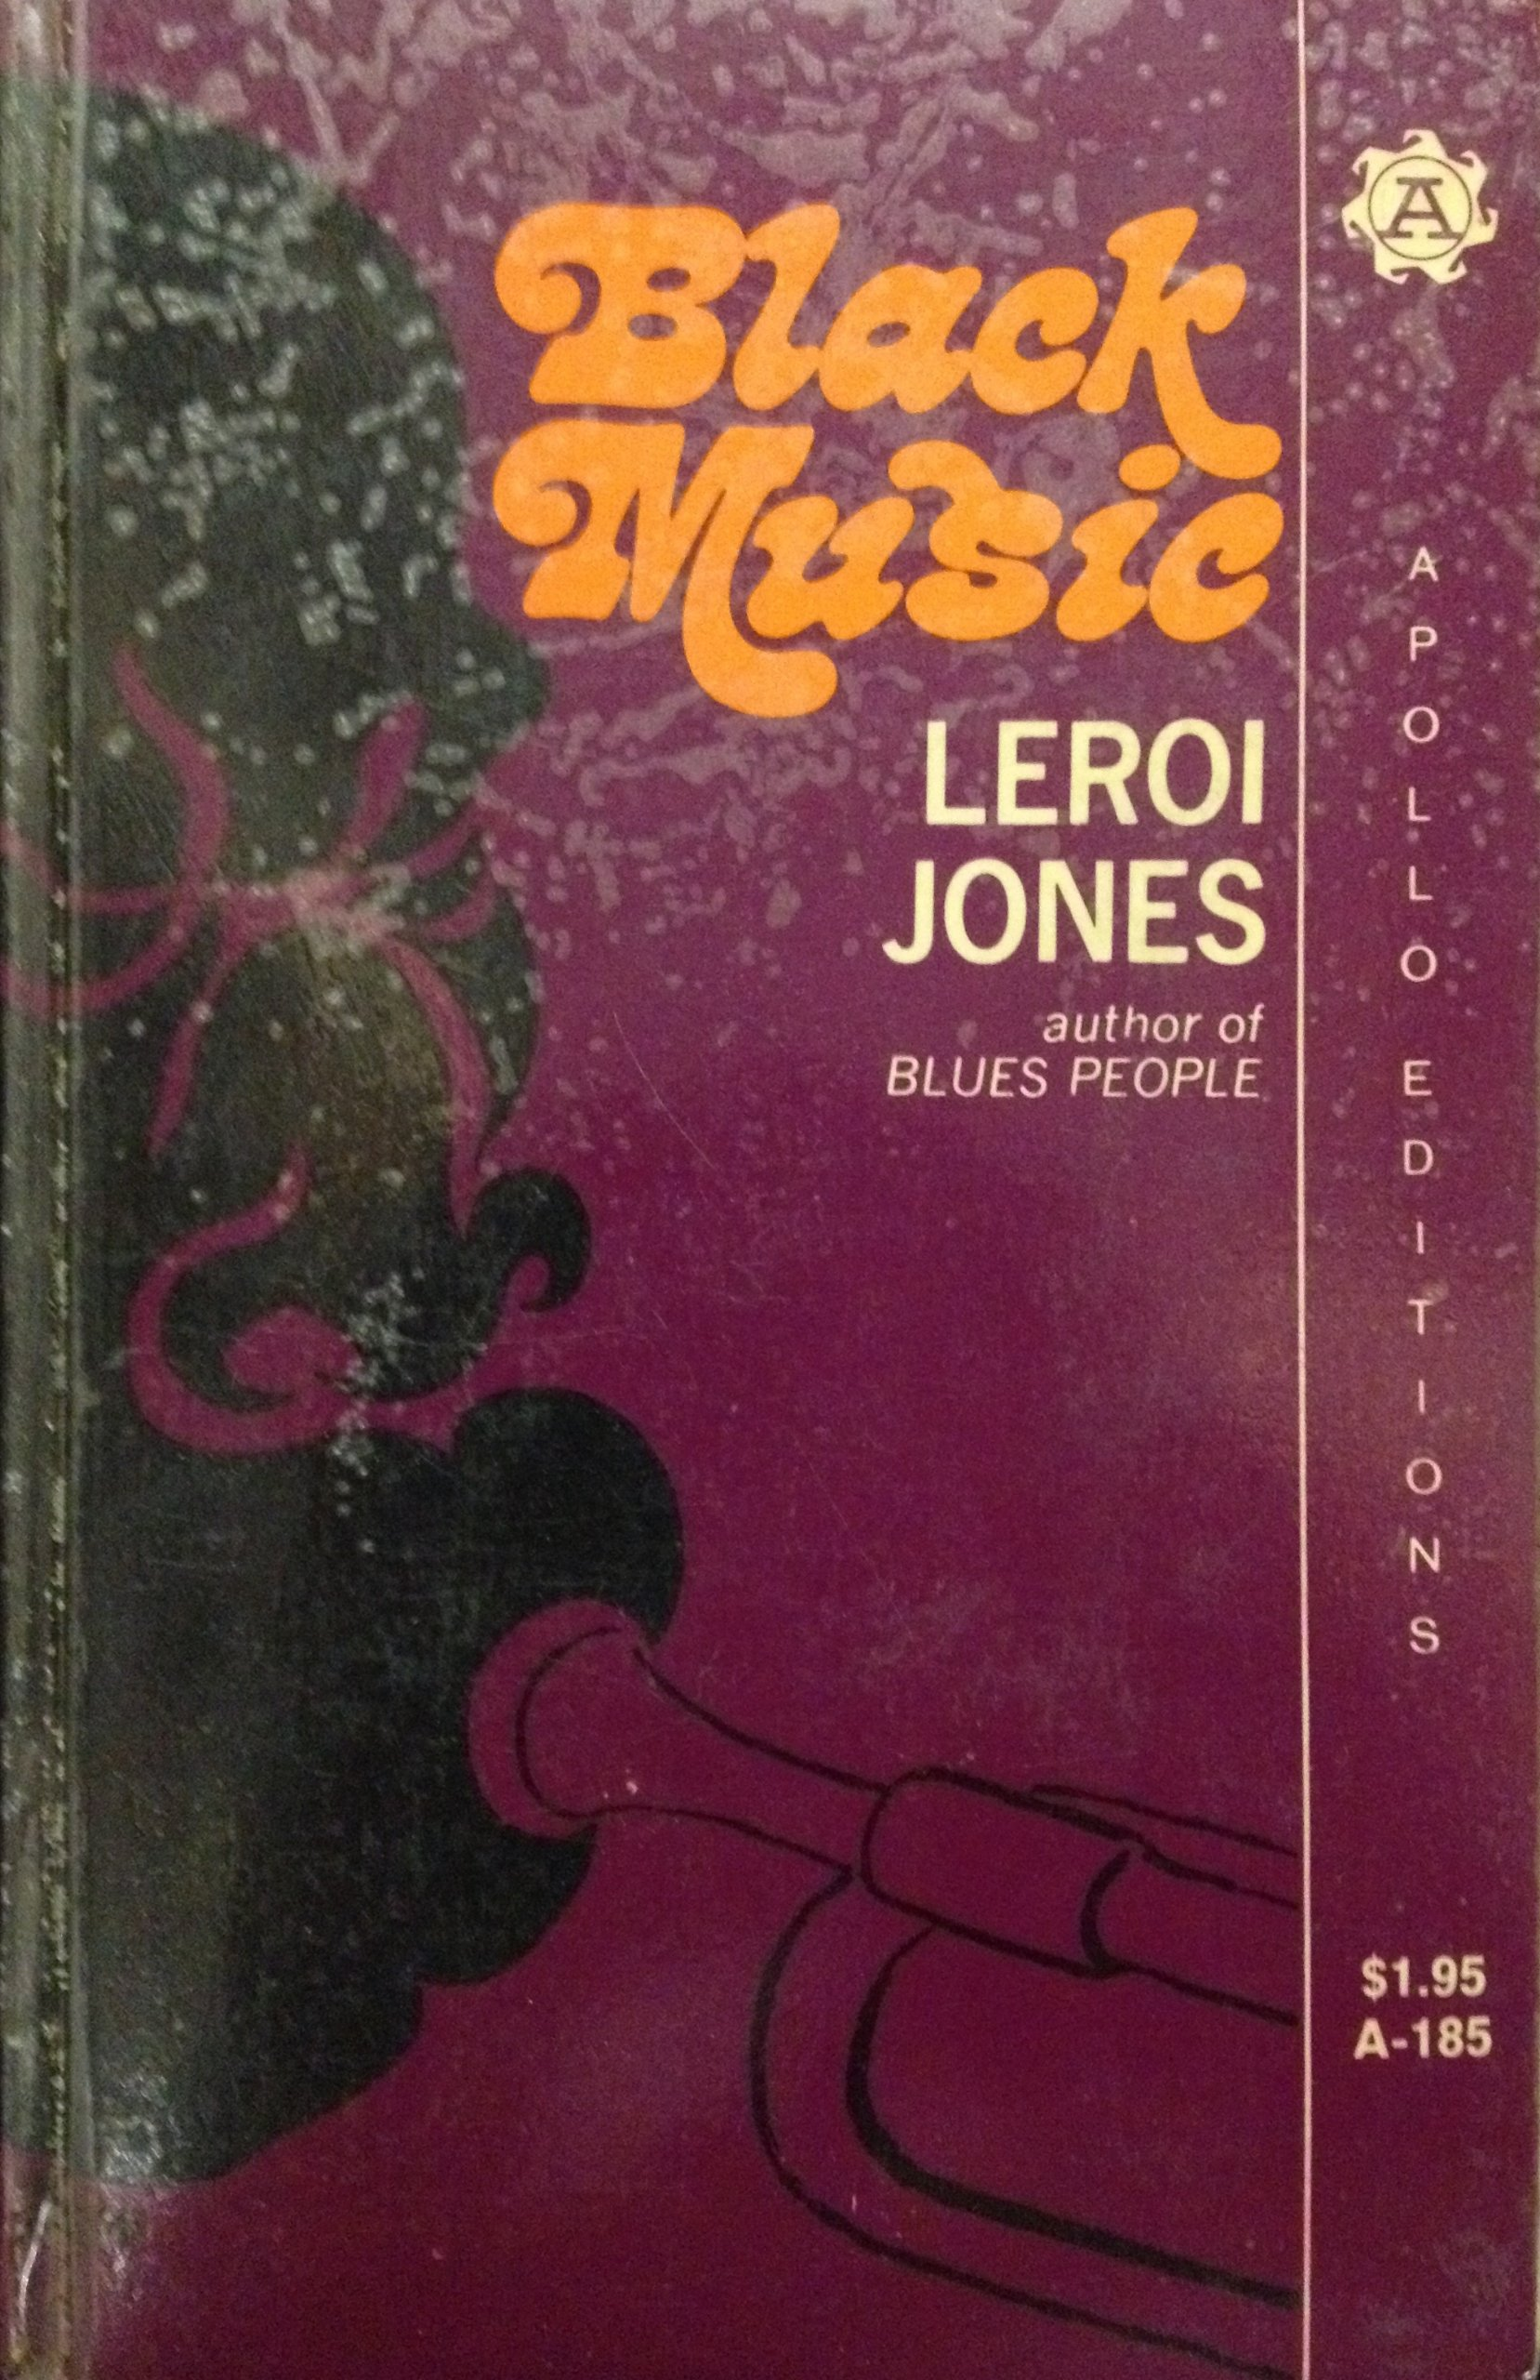 Black Music, Jones, Leroi